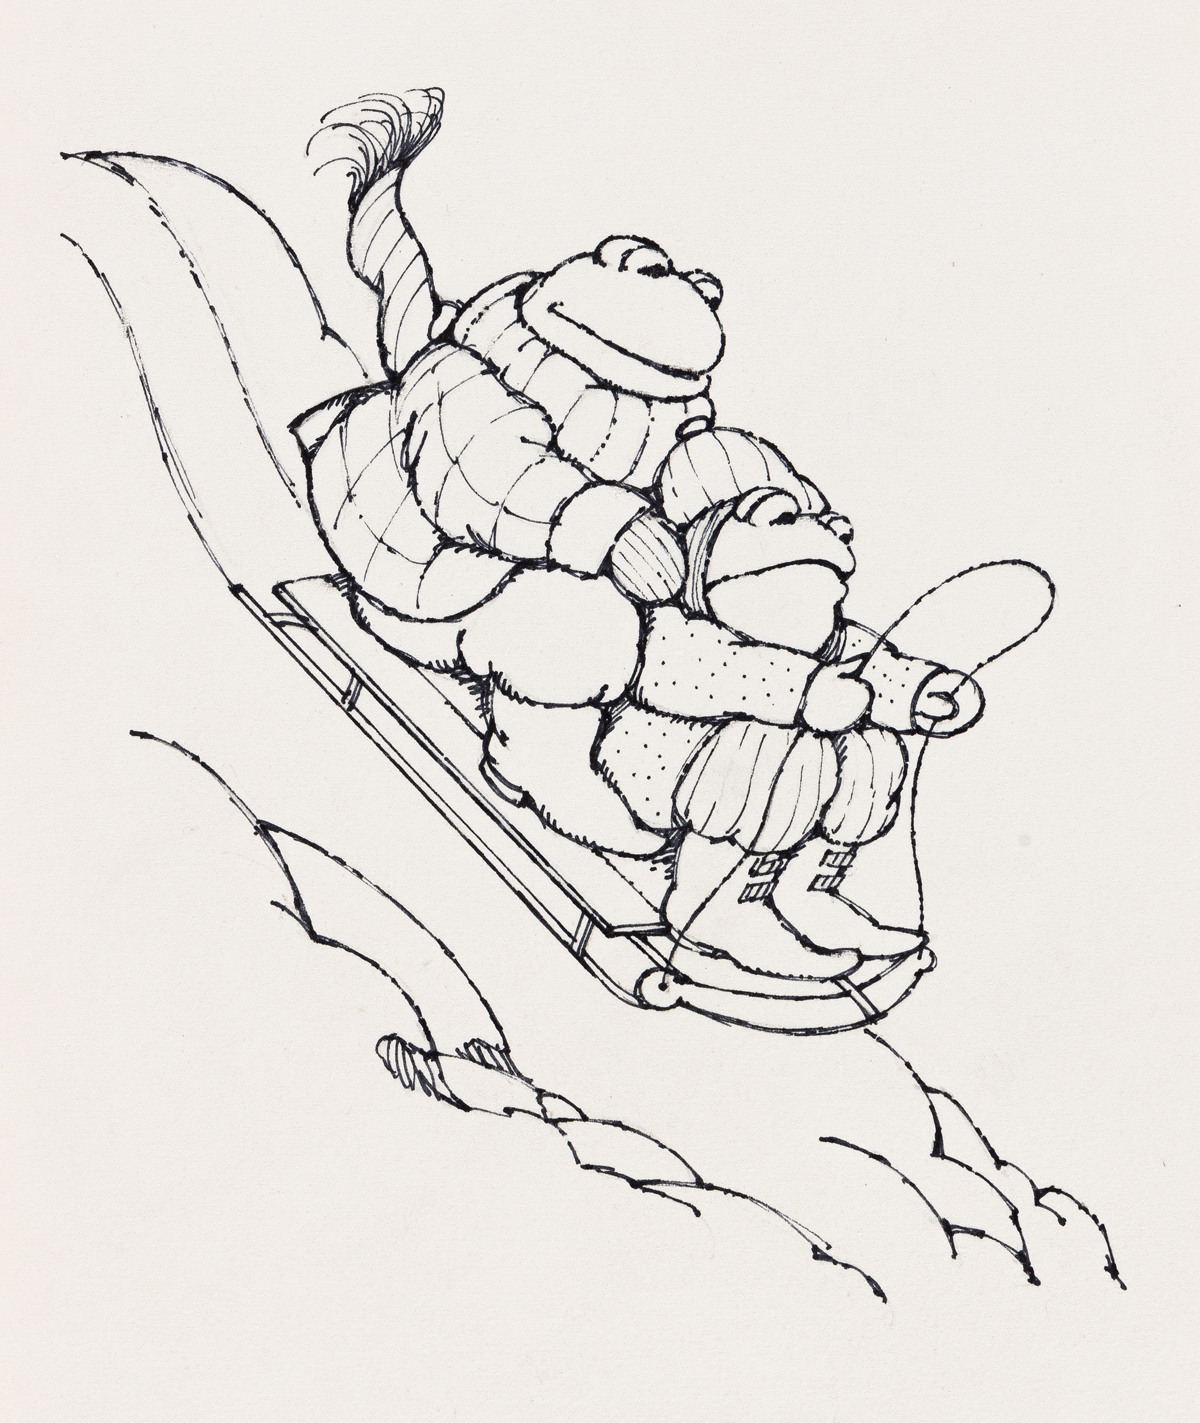 ARNOLD LOBEL (1933-1987) The sled began to move down the hill. [CHILDRENS]